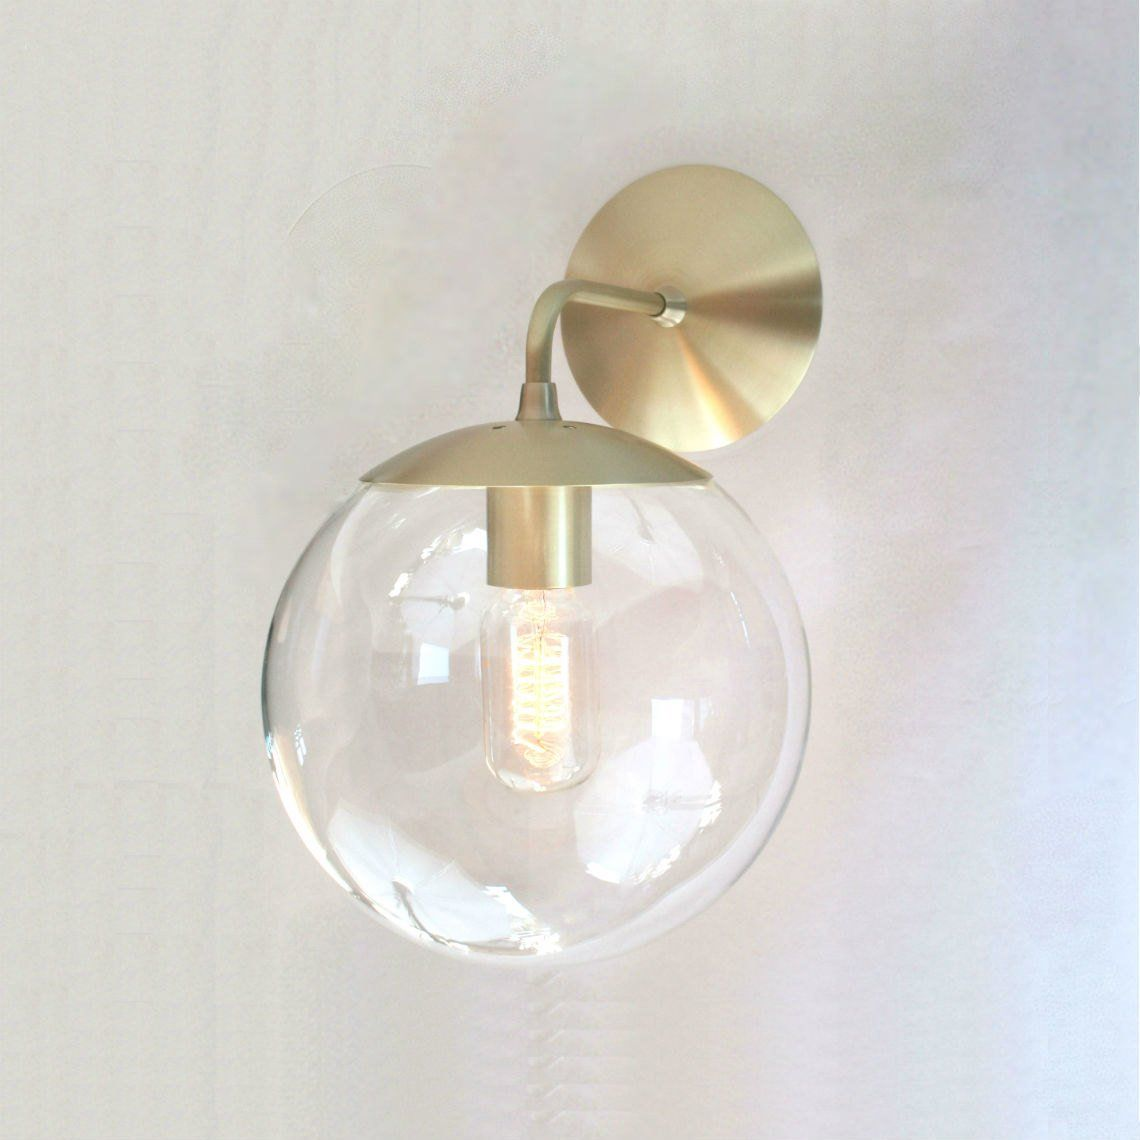 Adapted for EU Use - Orbiter 8 Wall Sconce - Mid Century Modern Wall ...